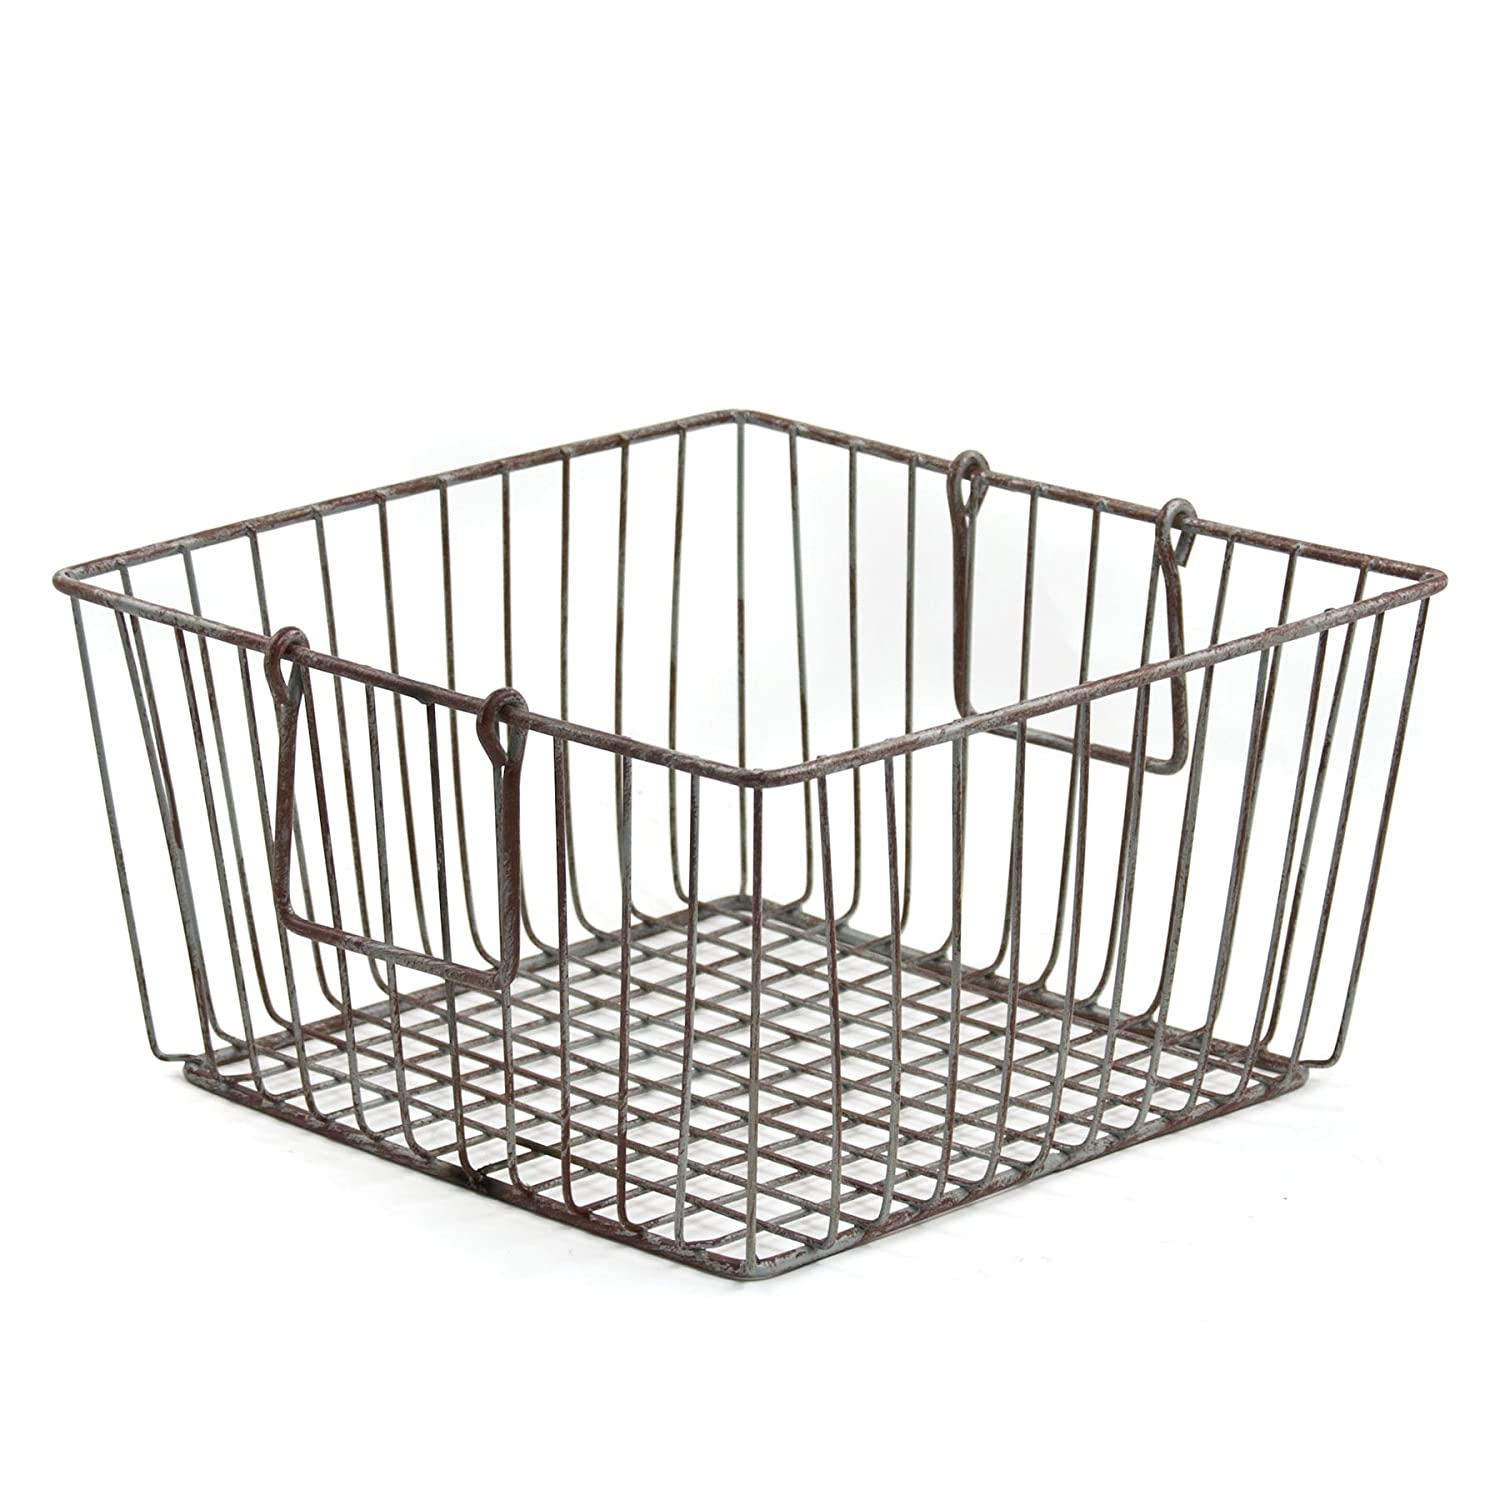 Amazon.com: Skalny Square Wire Storage Container, 11.75 x 6.25 ...